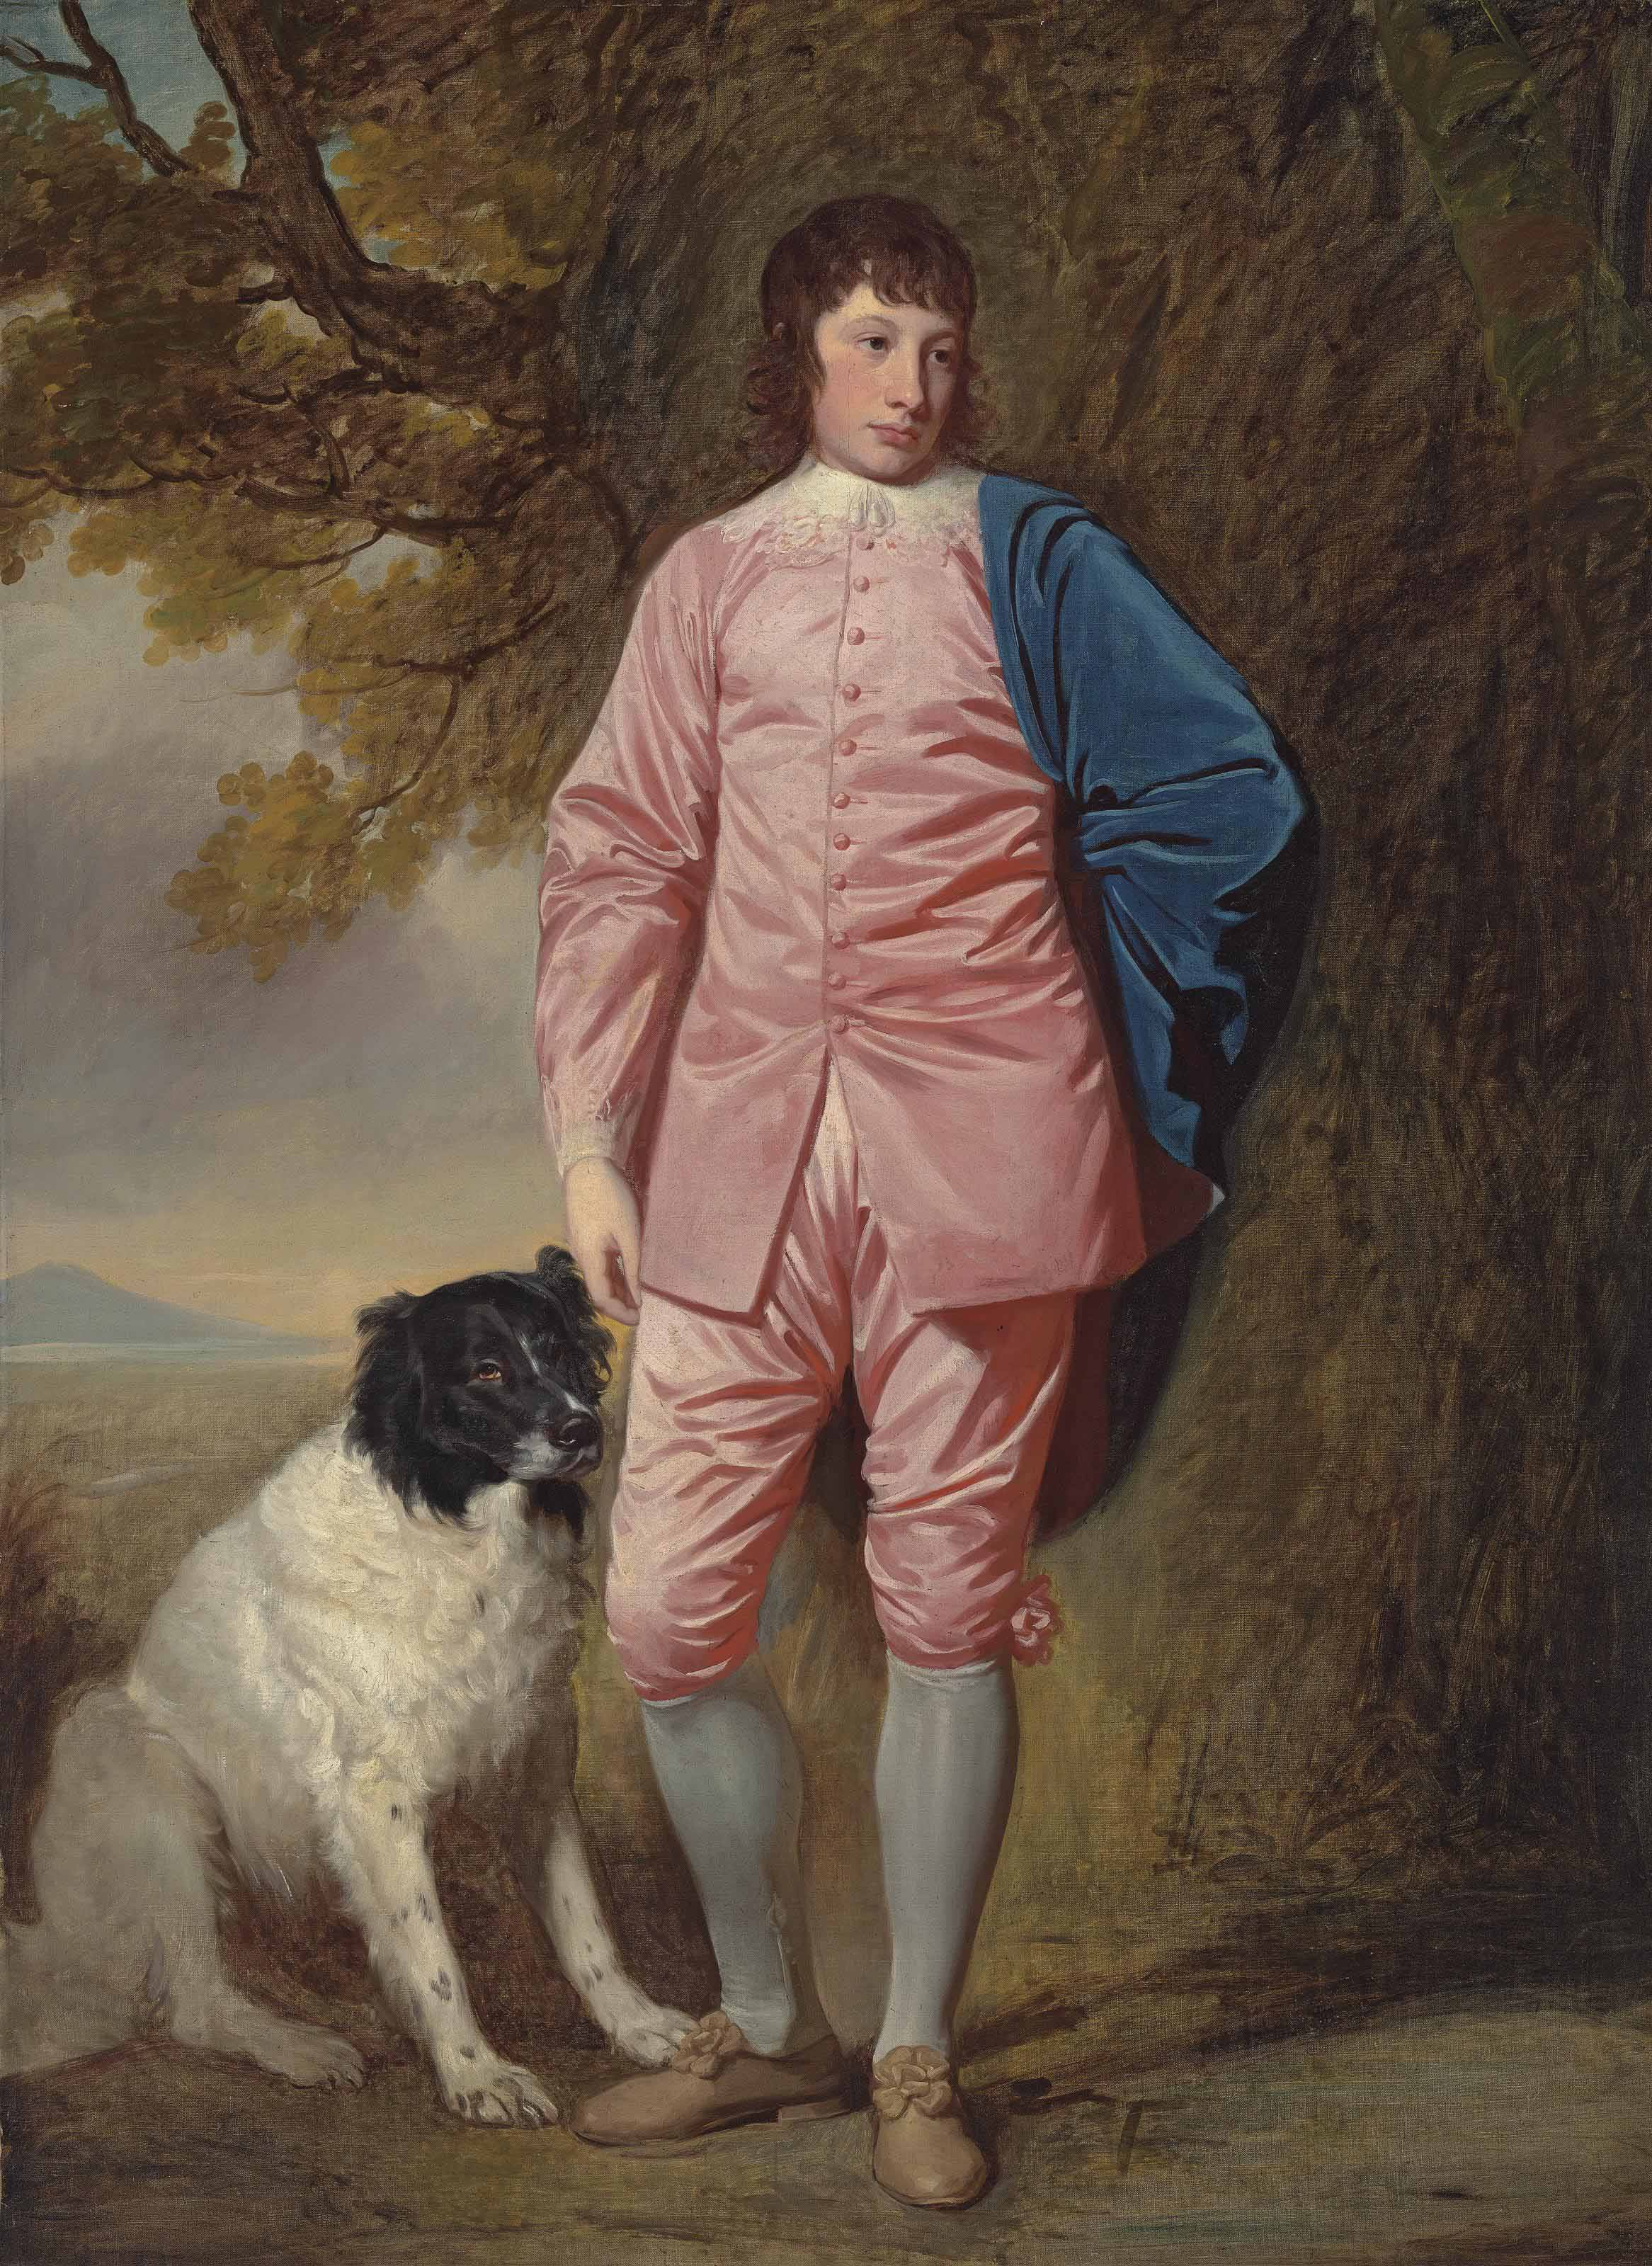 Portrait of Richard Newman Harding (1756-1808), full length, in a pink coat and breeches, with a dog in a wooded landscape